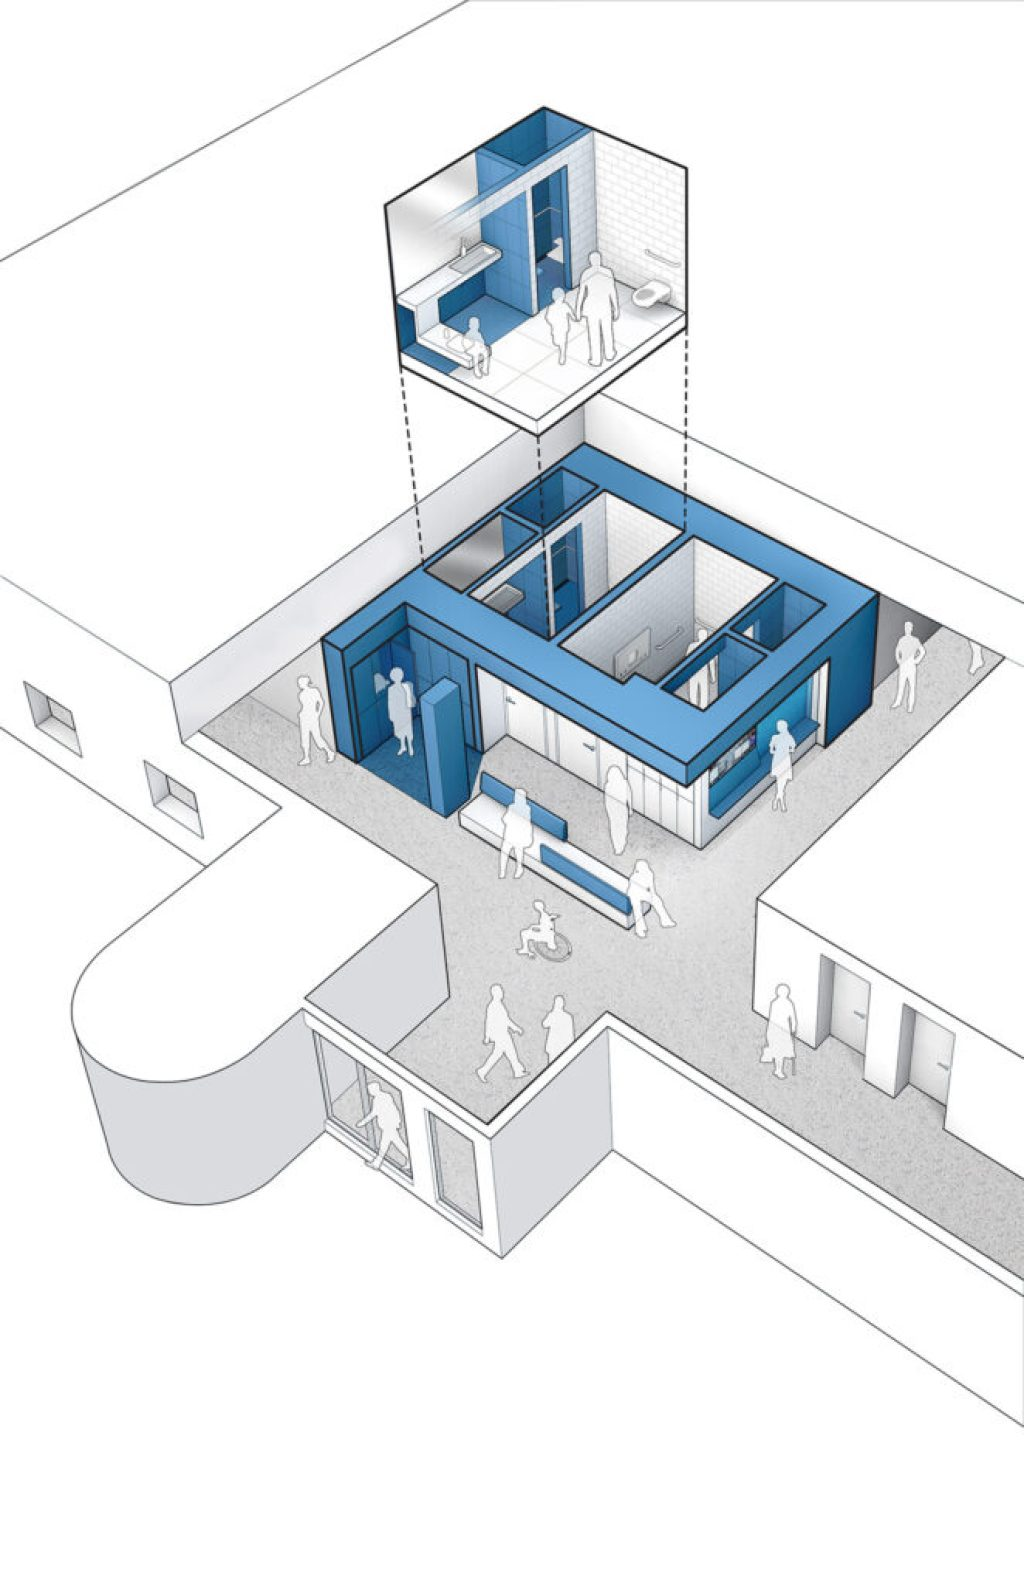 On the lower level of the Field House, we are creating two inclusive changing rooms. Located off the main entry, the all-gender changing rooms act as a vestibule that welcomes visitors entering the building. Image courtesy of JSA (Joel Sanders Architect) and Brenna Thompson (Yale School of Architecture)